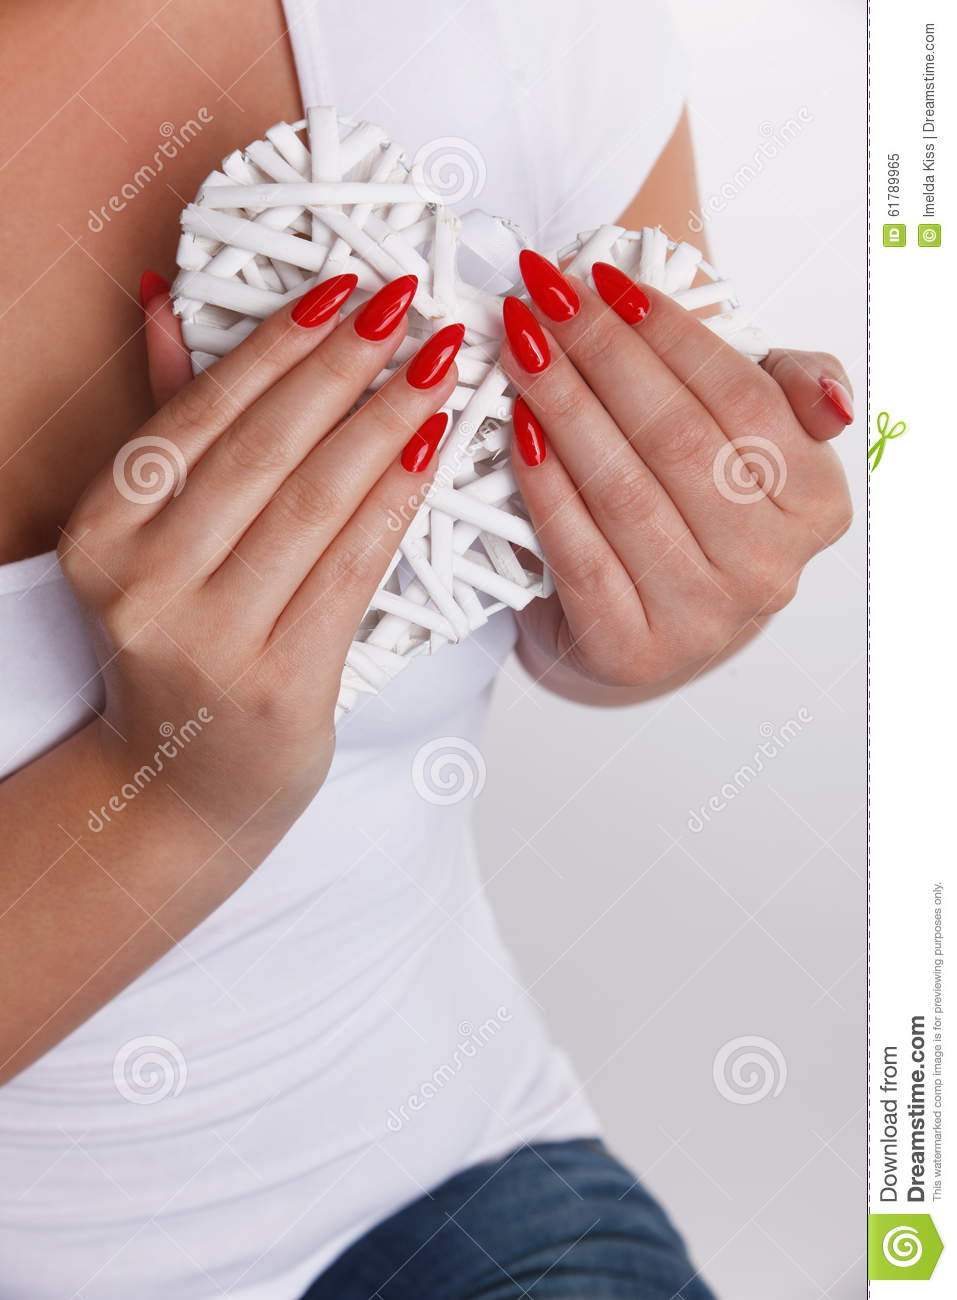 Woman with red nails stock image. Image of decor, girl - 61789965